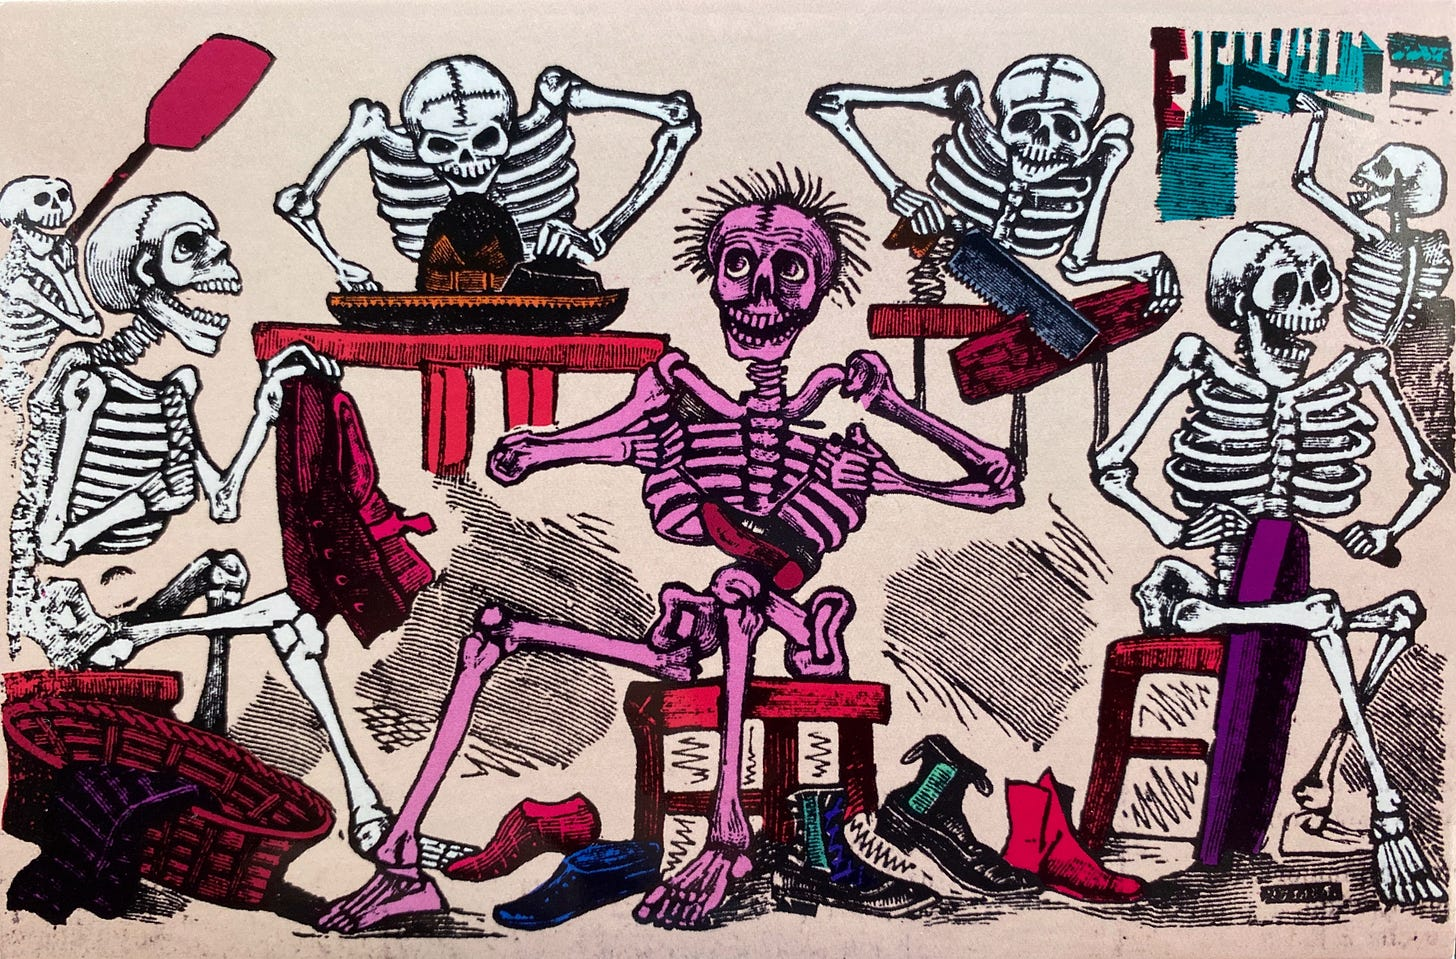 A group of naked skeletons crafting shoes, hats and other forms of clothing in their shop.